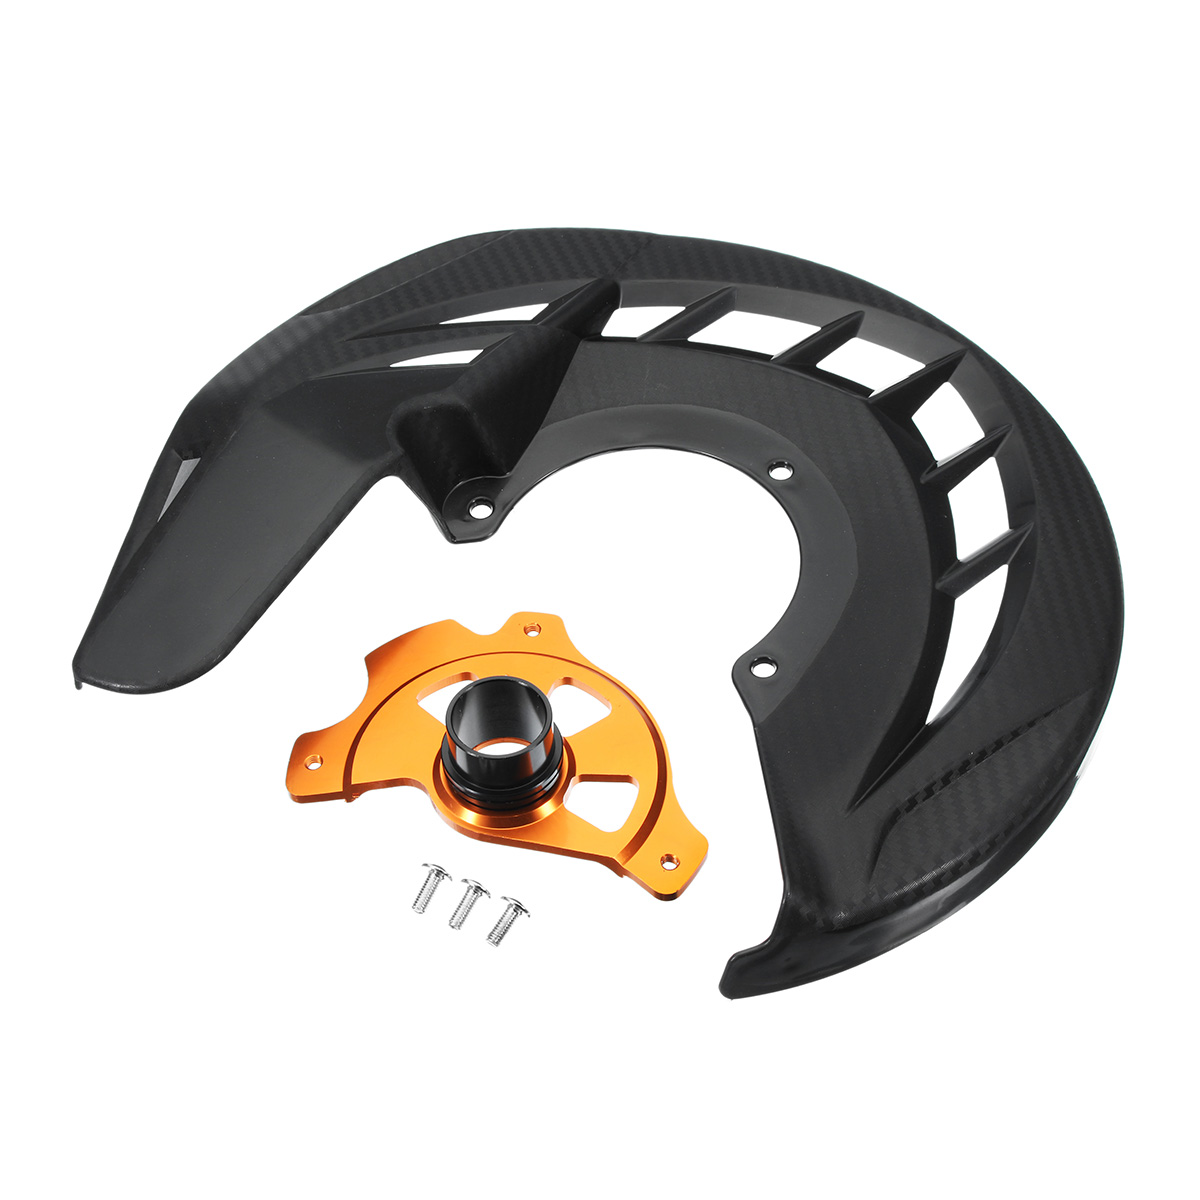 Motorcycle Front Brake Disc Rotor Guard Brake Cover Brake Protector For KTM 125-530 SX/SXF/XC/XCF 03-14 125-530 EXC/EXCF 03-15 mfs motor motorcycle part front rear brake discs rotor for yamaha yzf r6 2003 2004 2005 yzfr6 03 04 05 gold